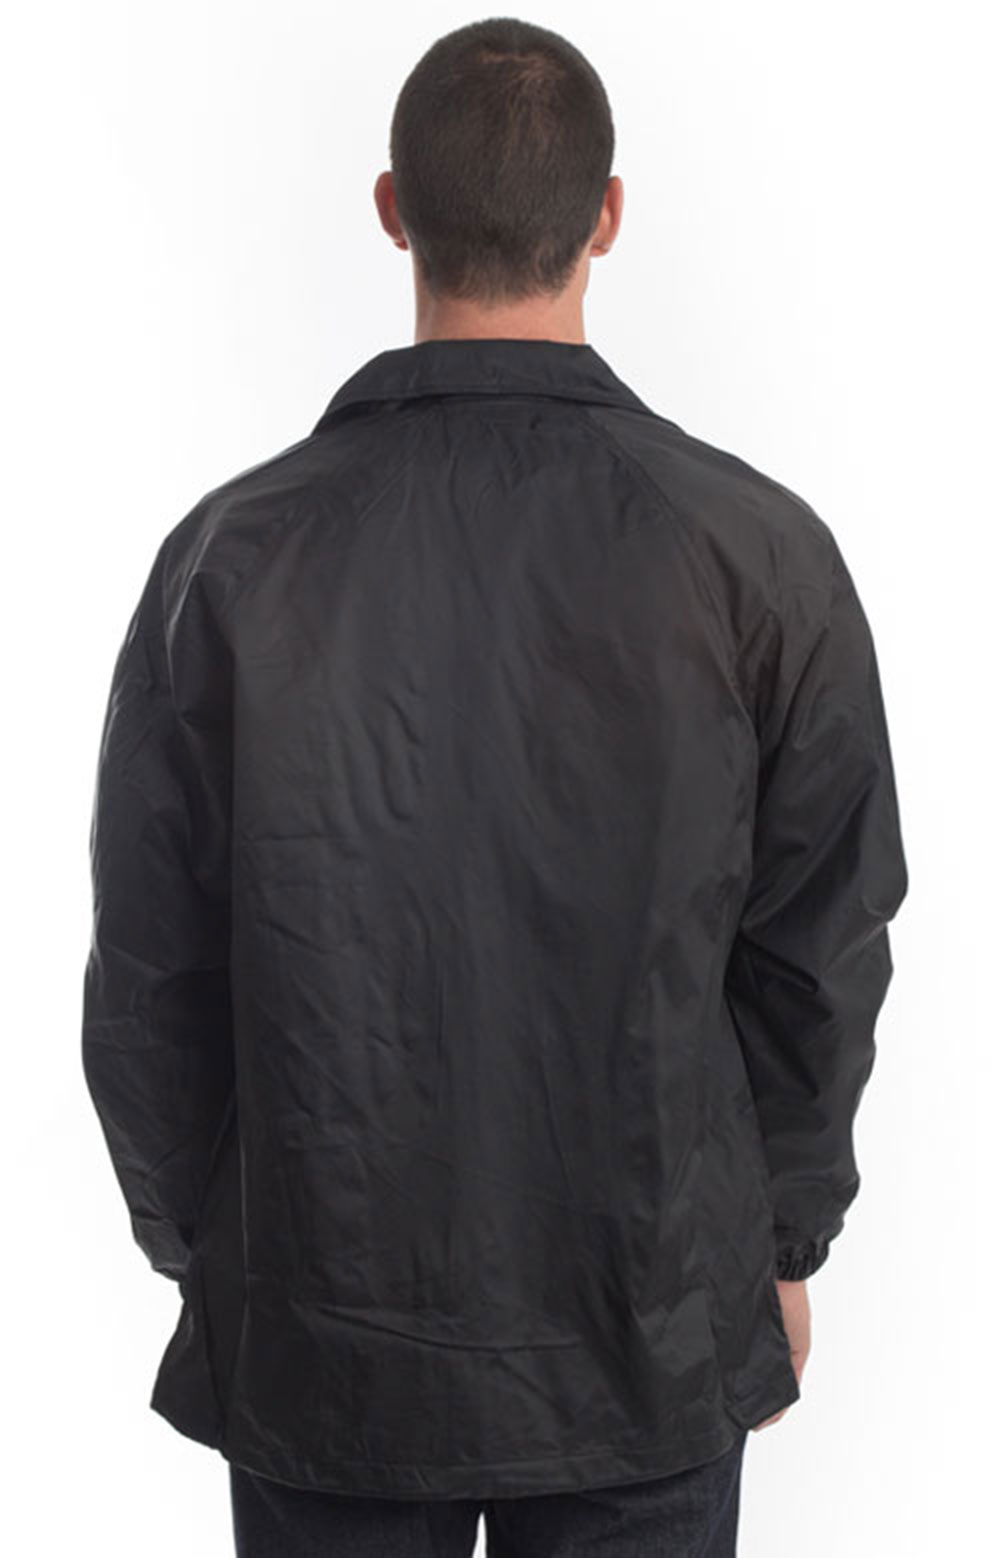 (76242BK) Snap Front Nylon Jacket - Black 3